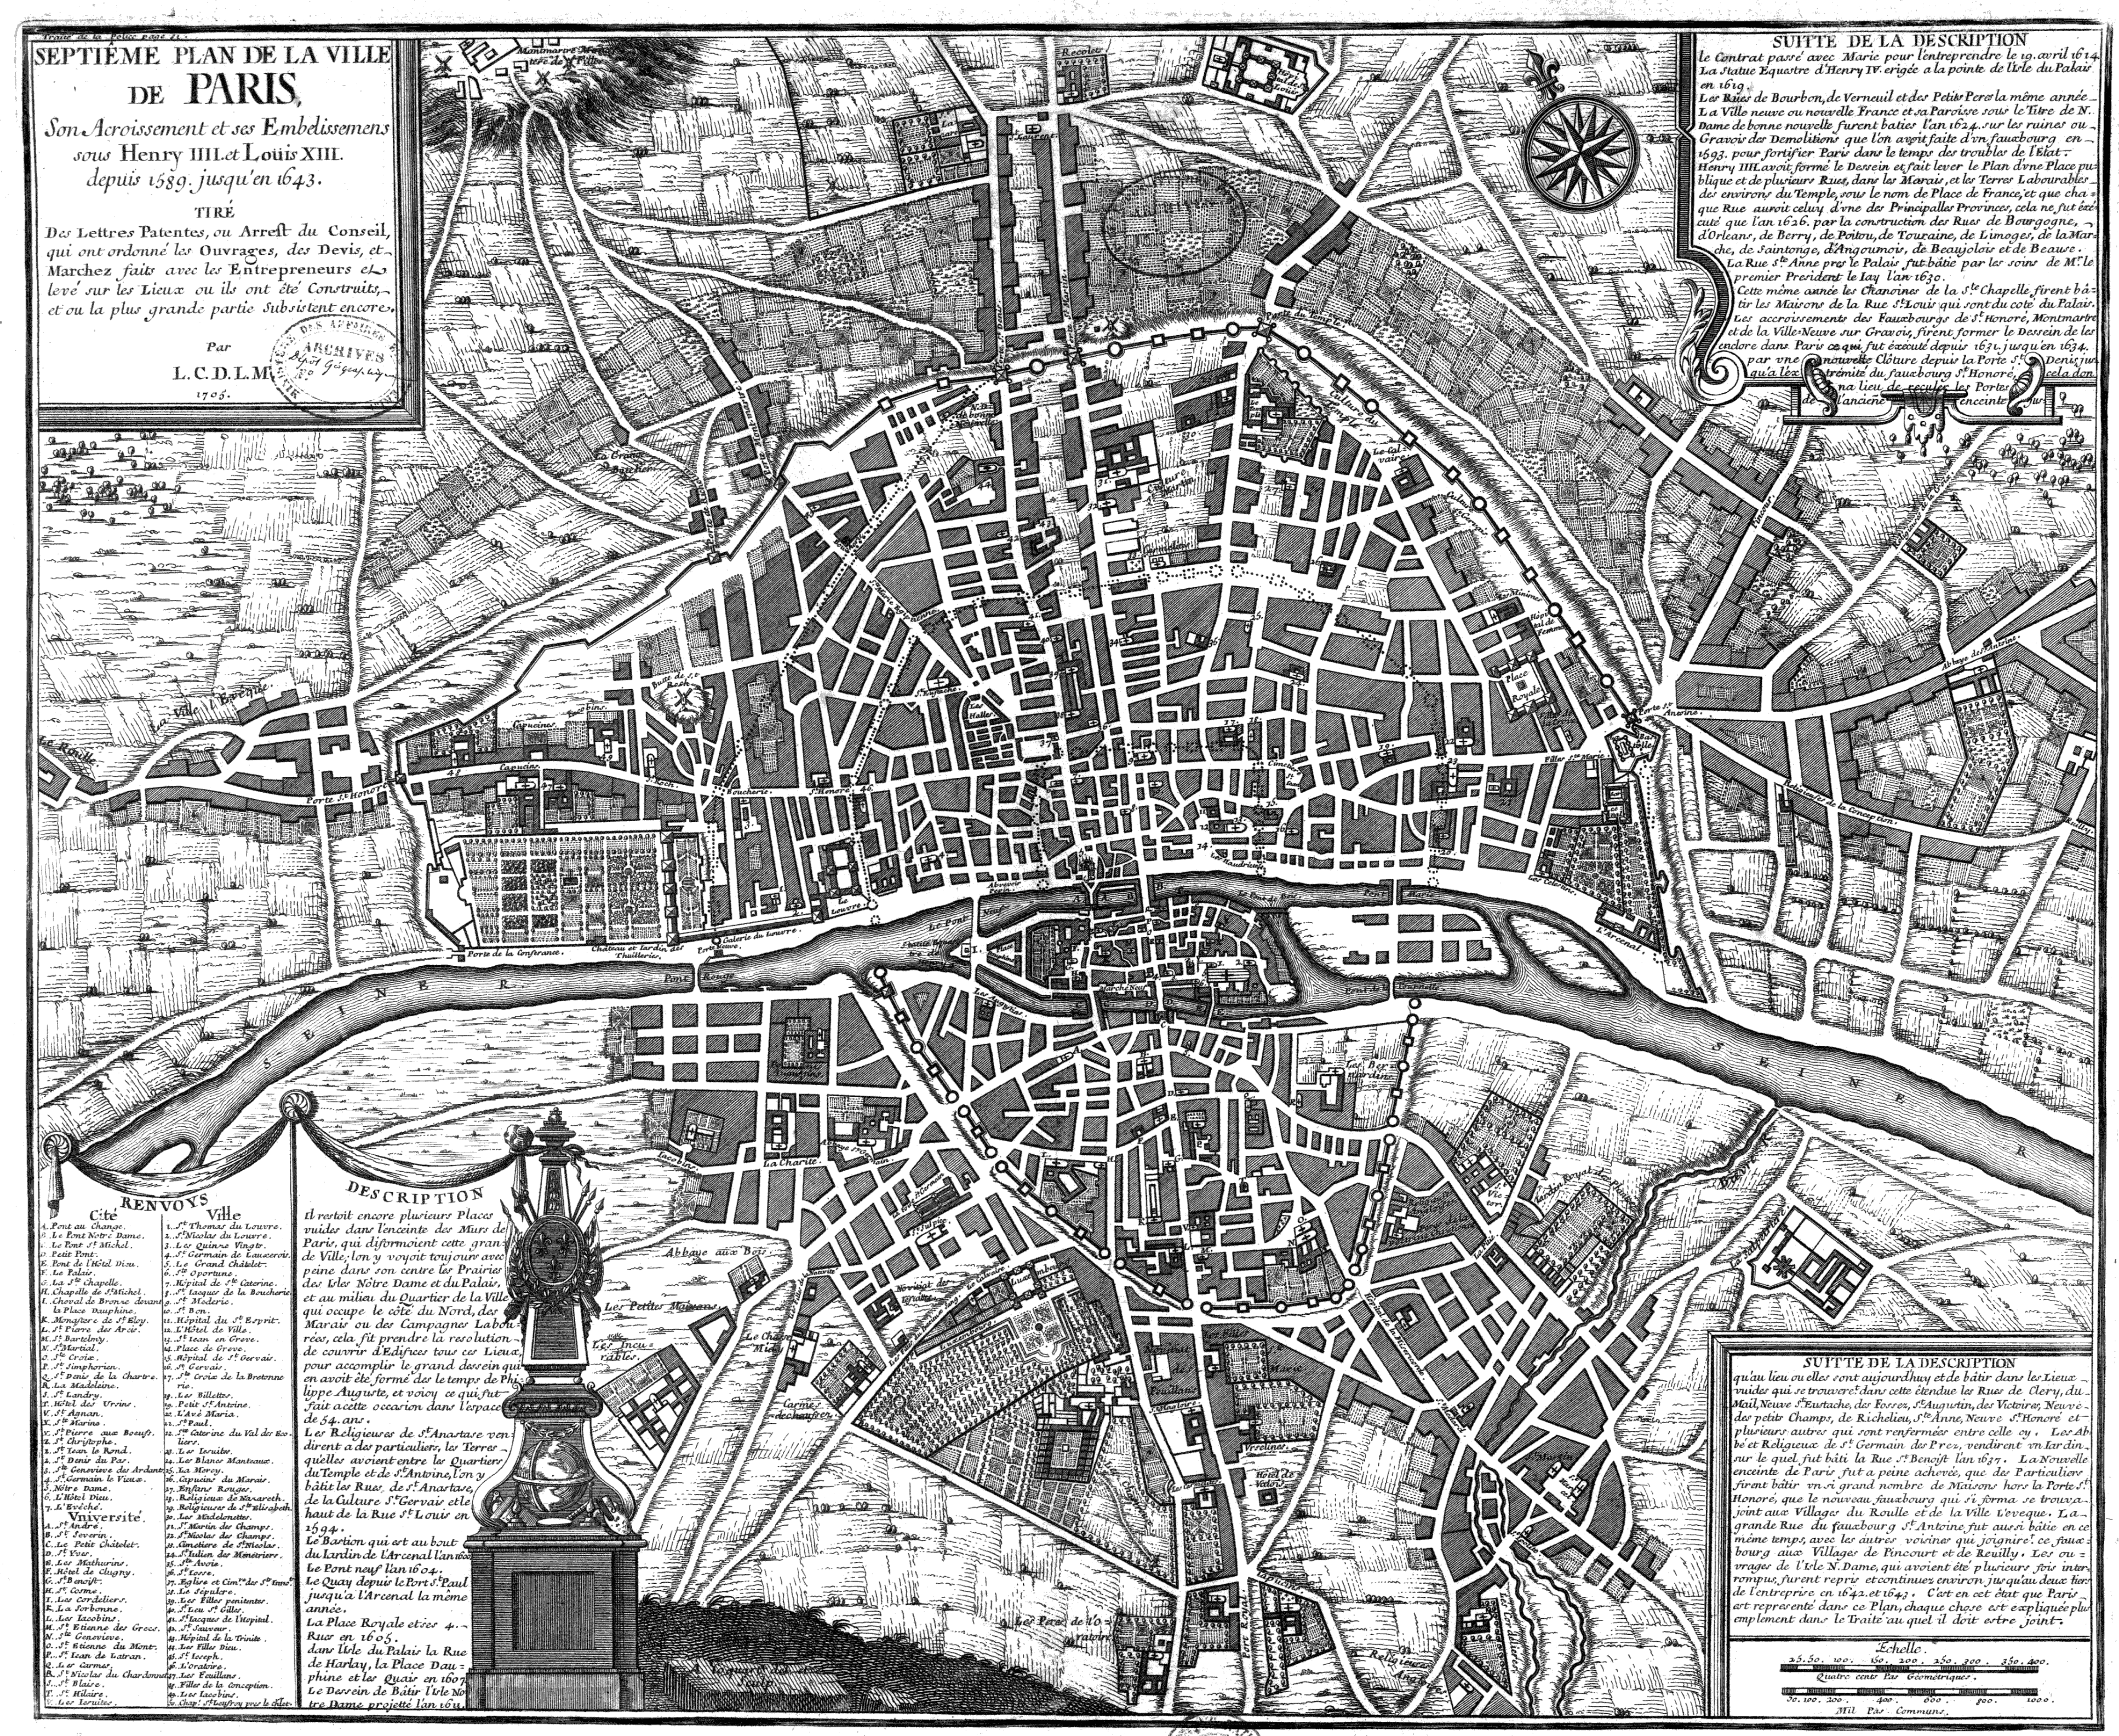 Map of an expanding Paris, 16th-17th centuries (Click map to view in larger size)